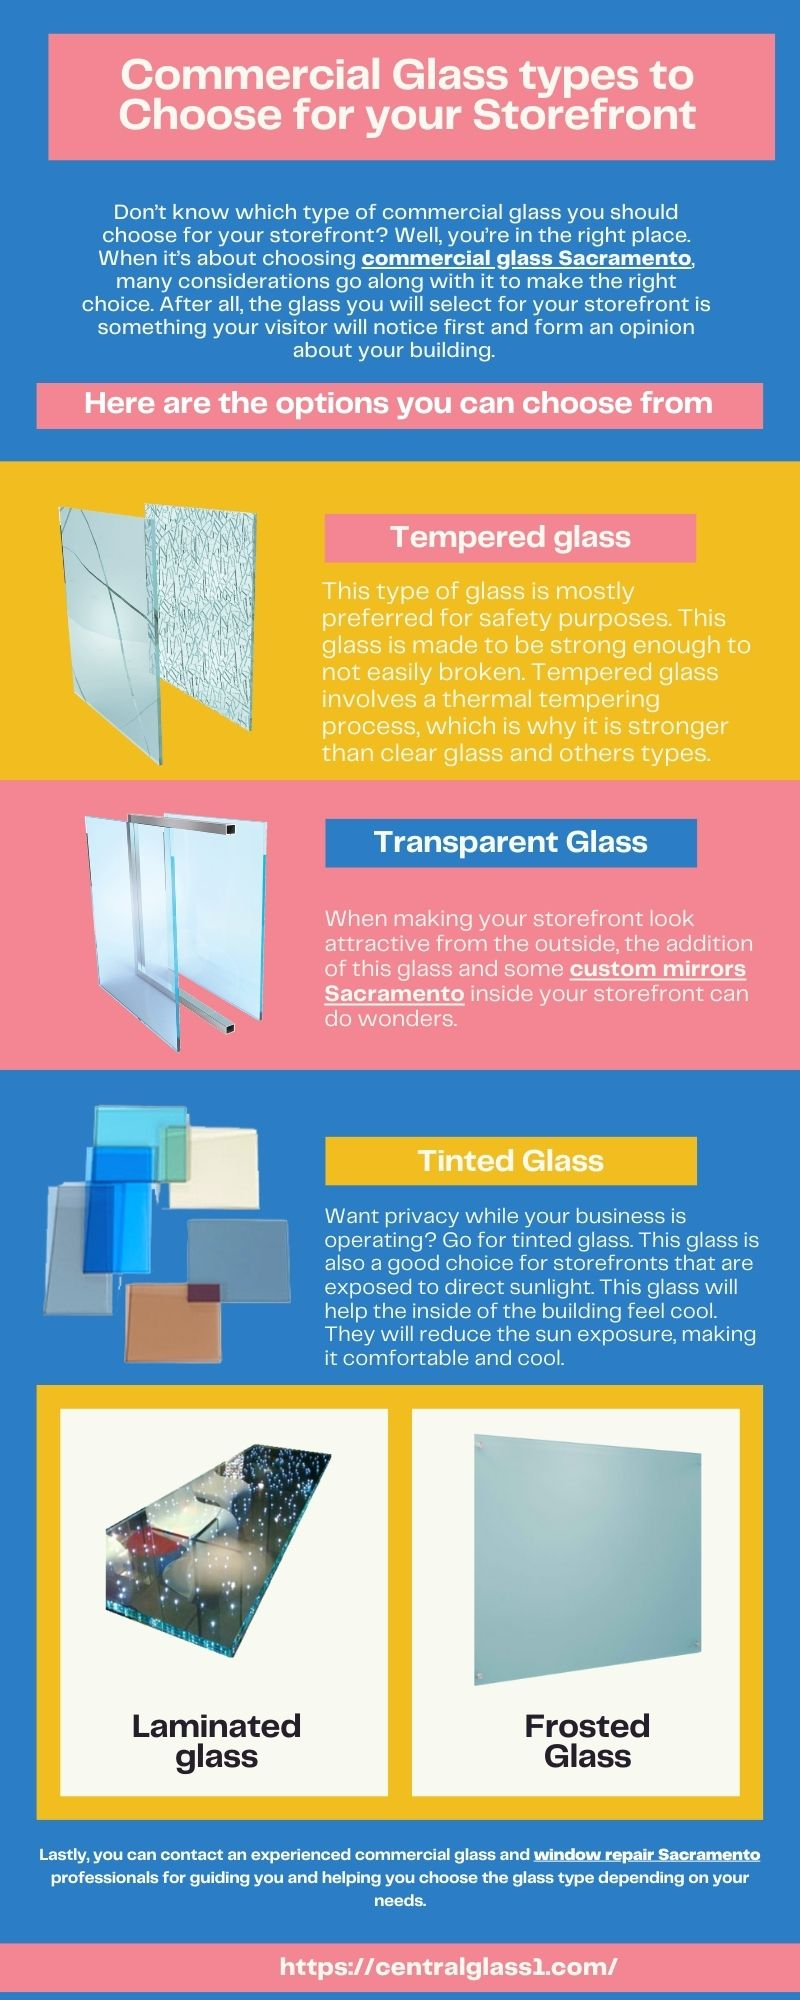 5 Types of Commercial Glass to Consider for Your Storefront